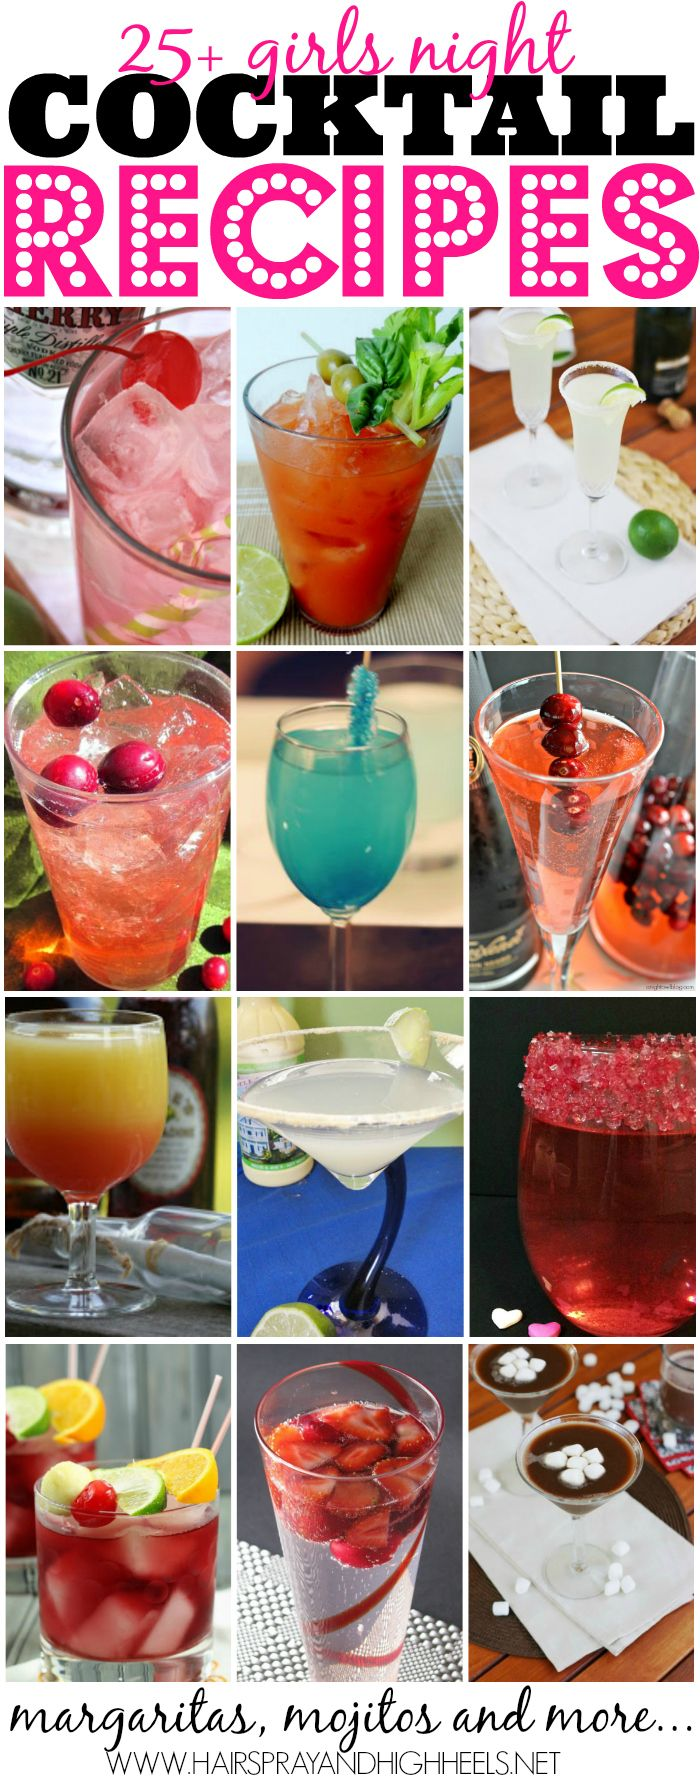 25 Girls Night Cocktail Recipes via www.hairsprayandhighheels.com @Krista McNamara McNamara Knight and HighHeels